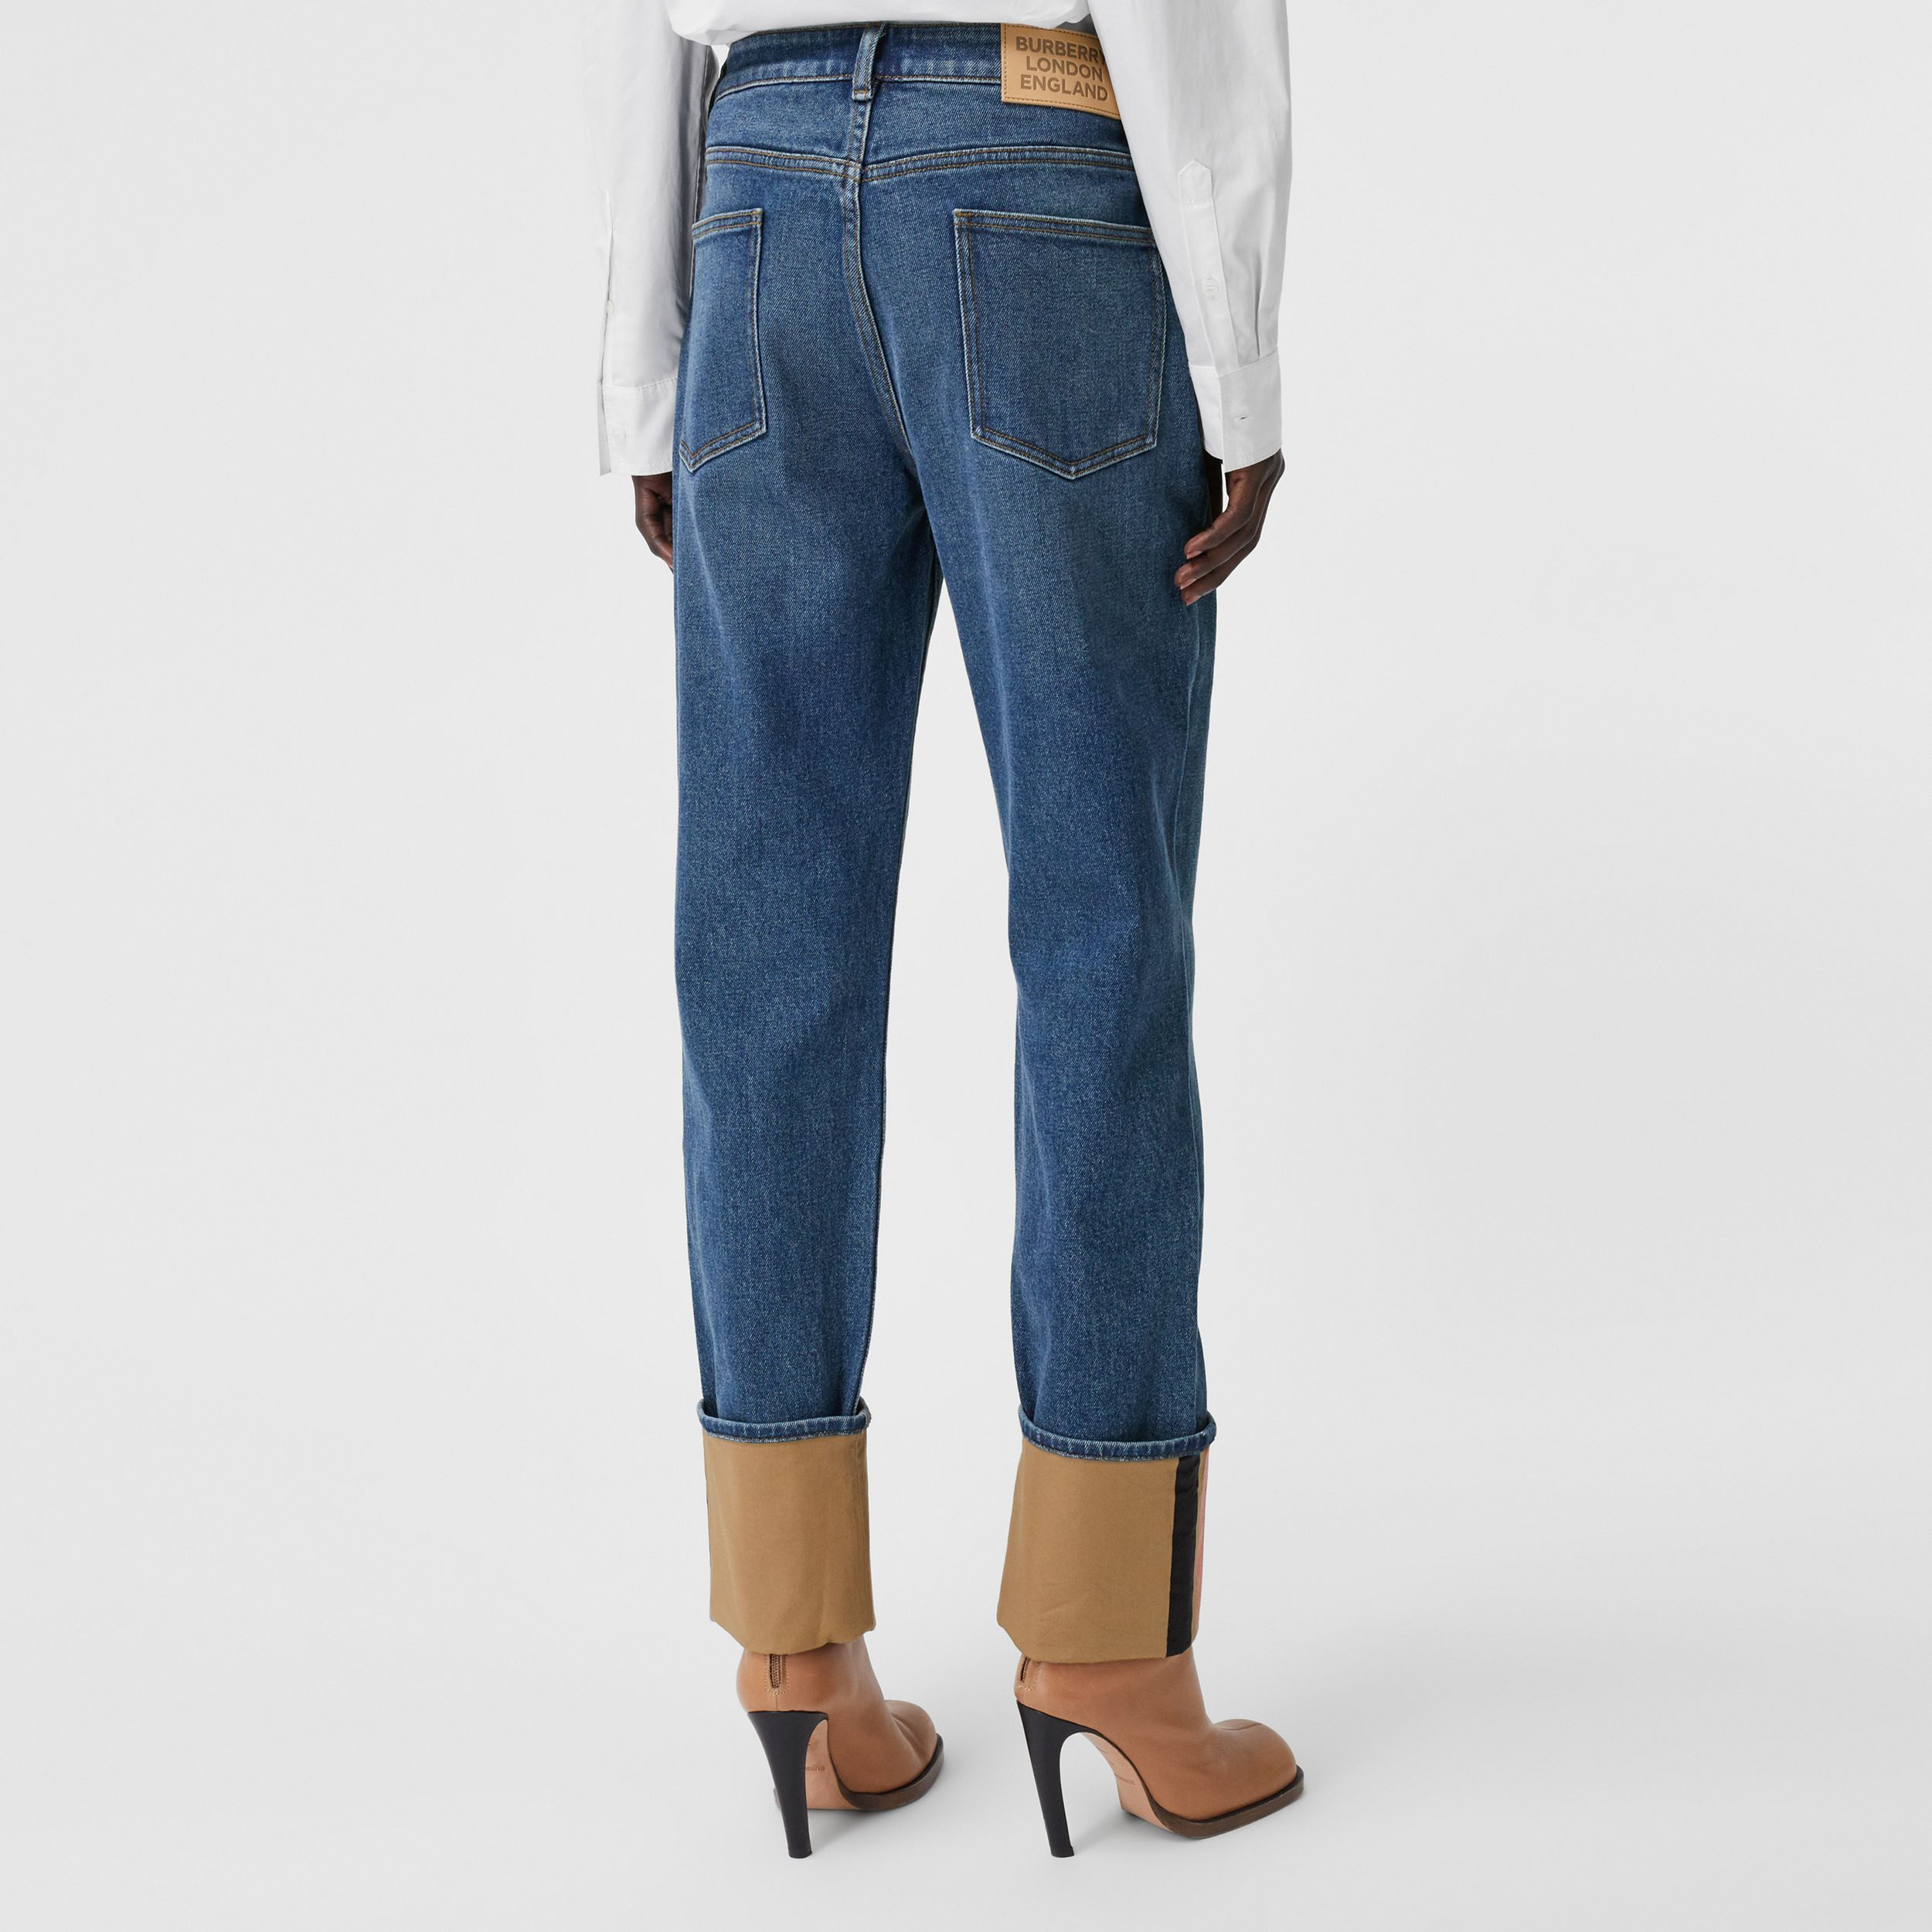 Straight Fit Striped Cuff Washed Jeans in Mid Indigo Blue - Women | Burberry - 3